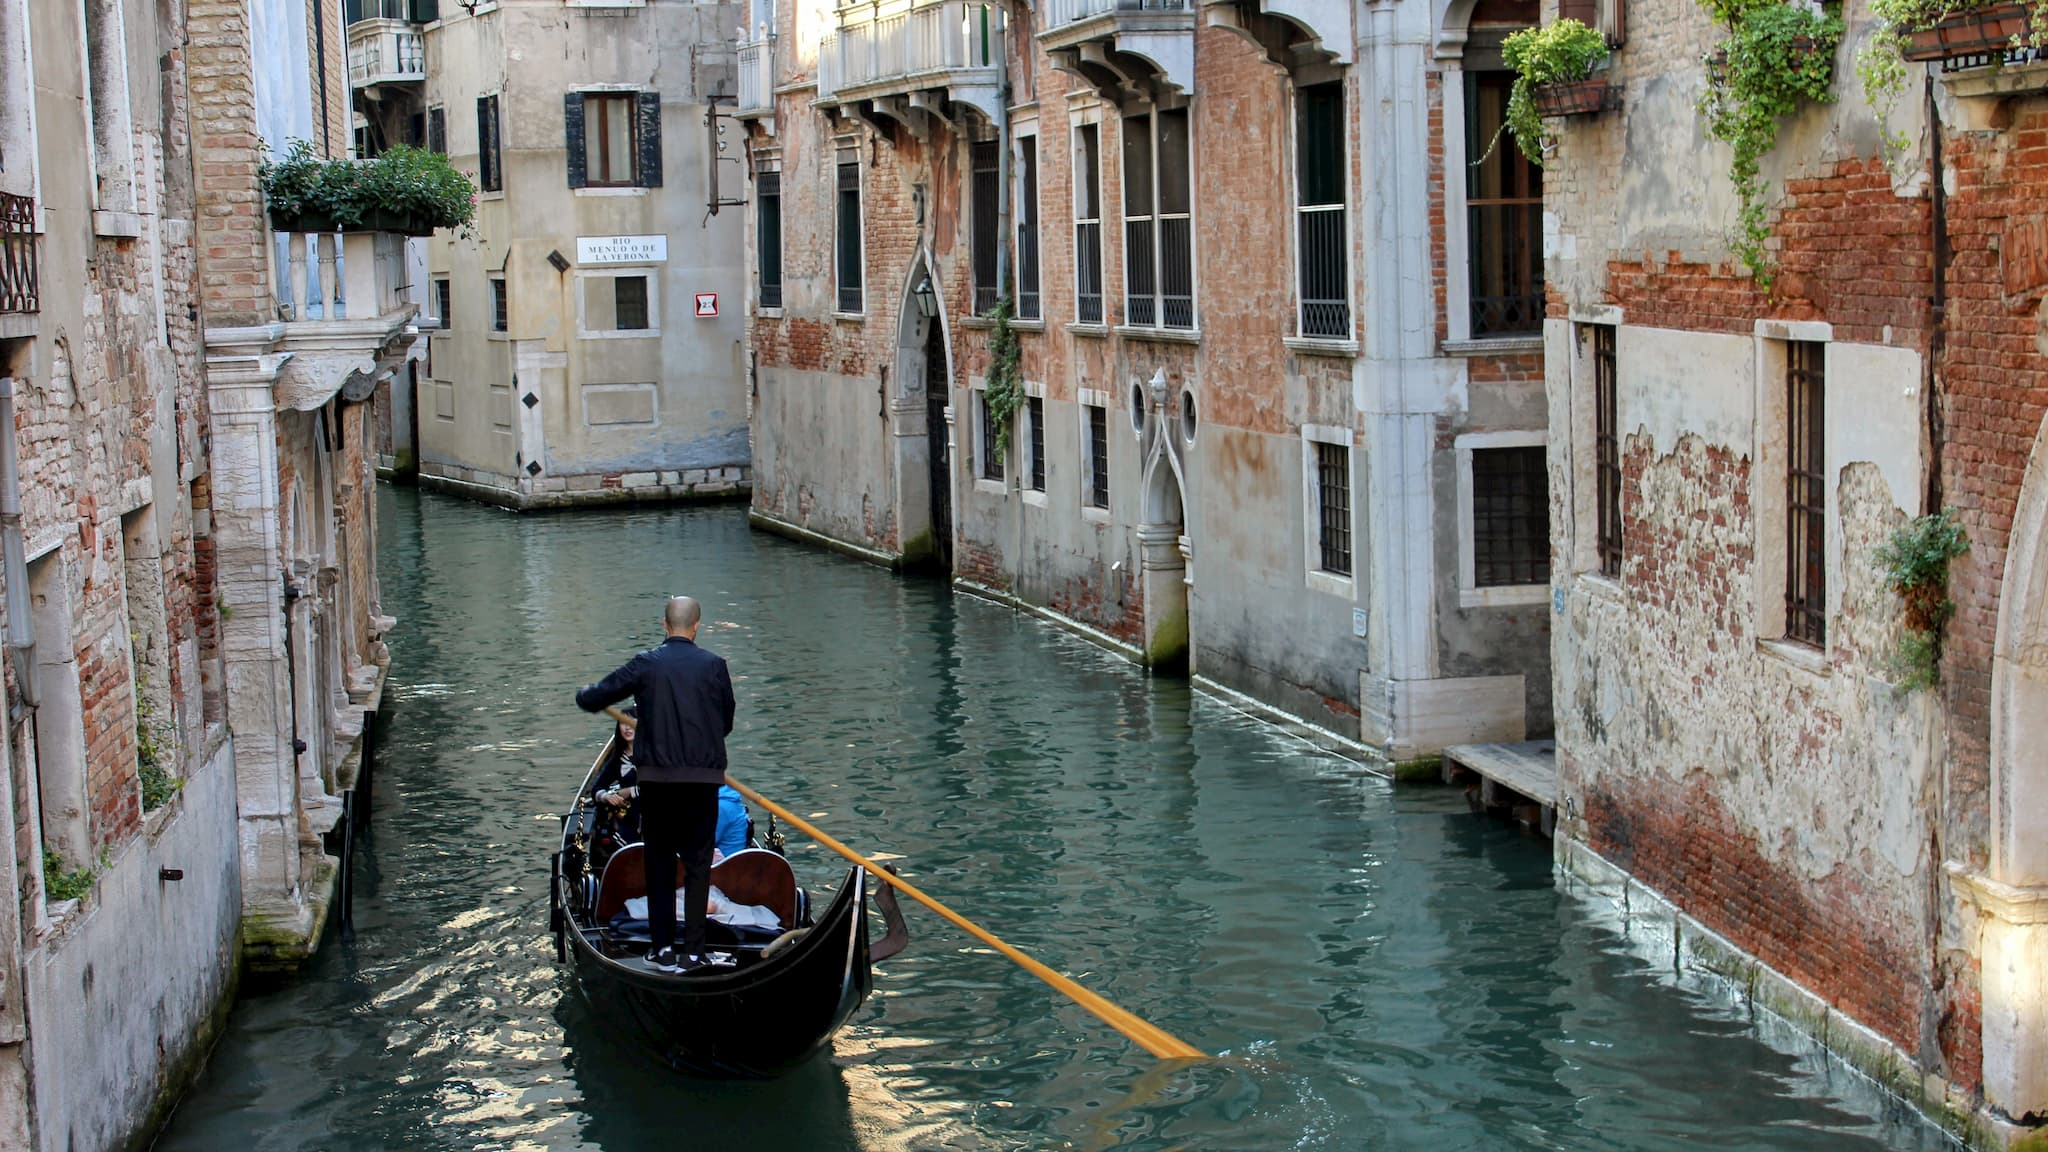 Gondola boat traveling down Venice canal